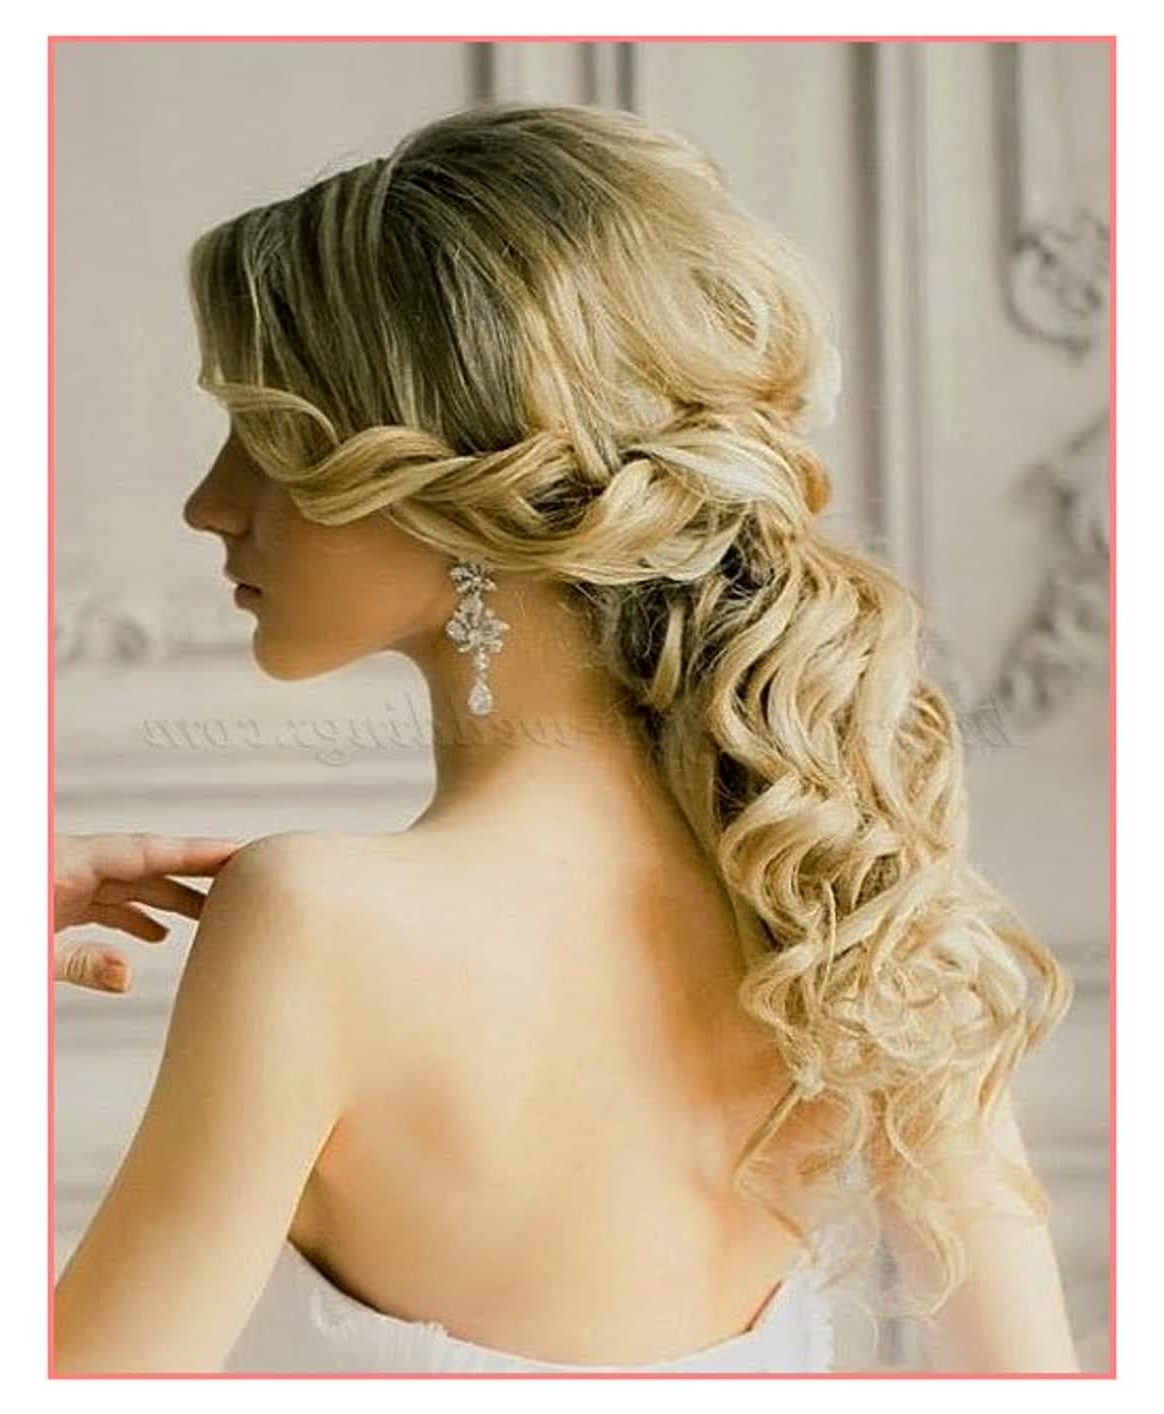 15 Ideas Of Wedding Down Hairstyles For Medium Length Hair